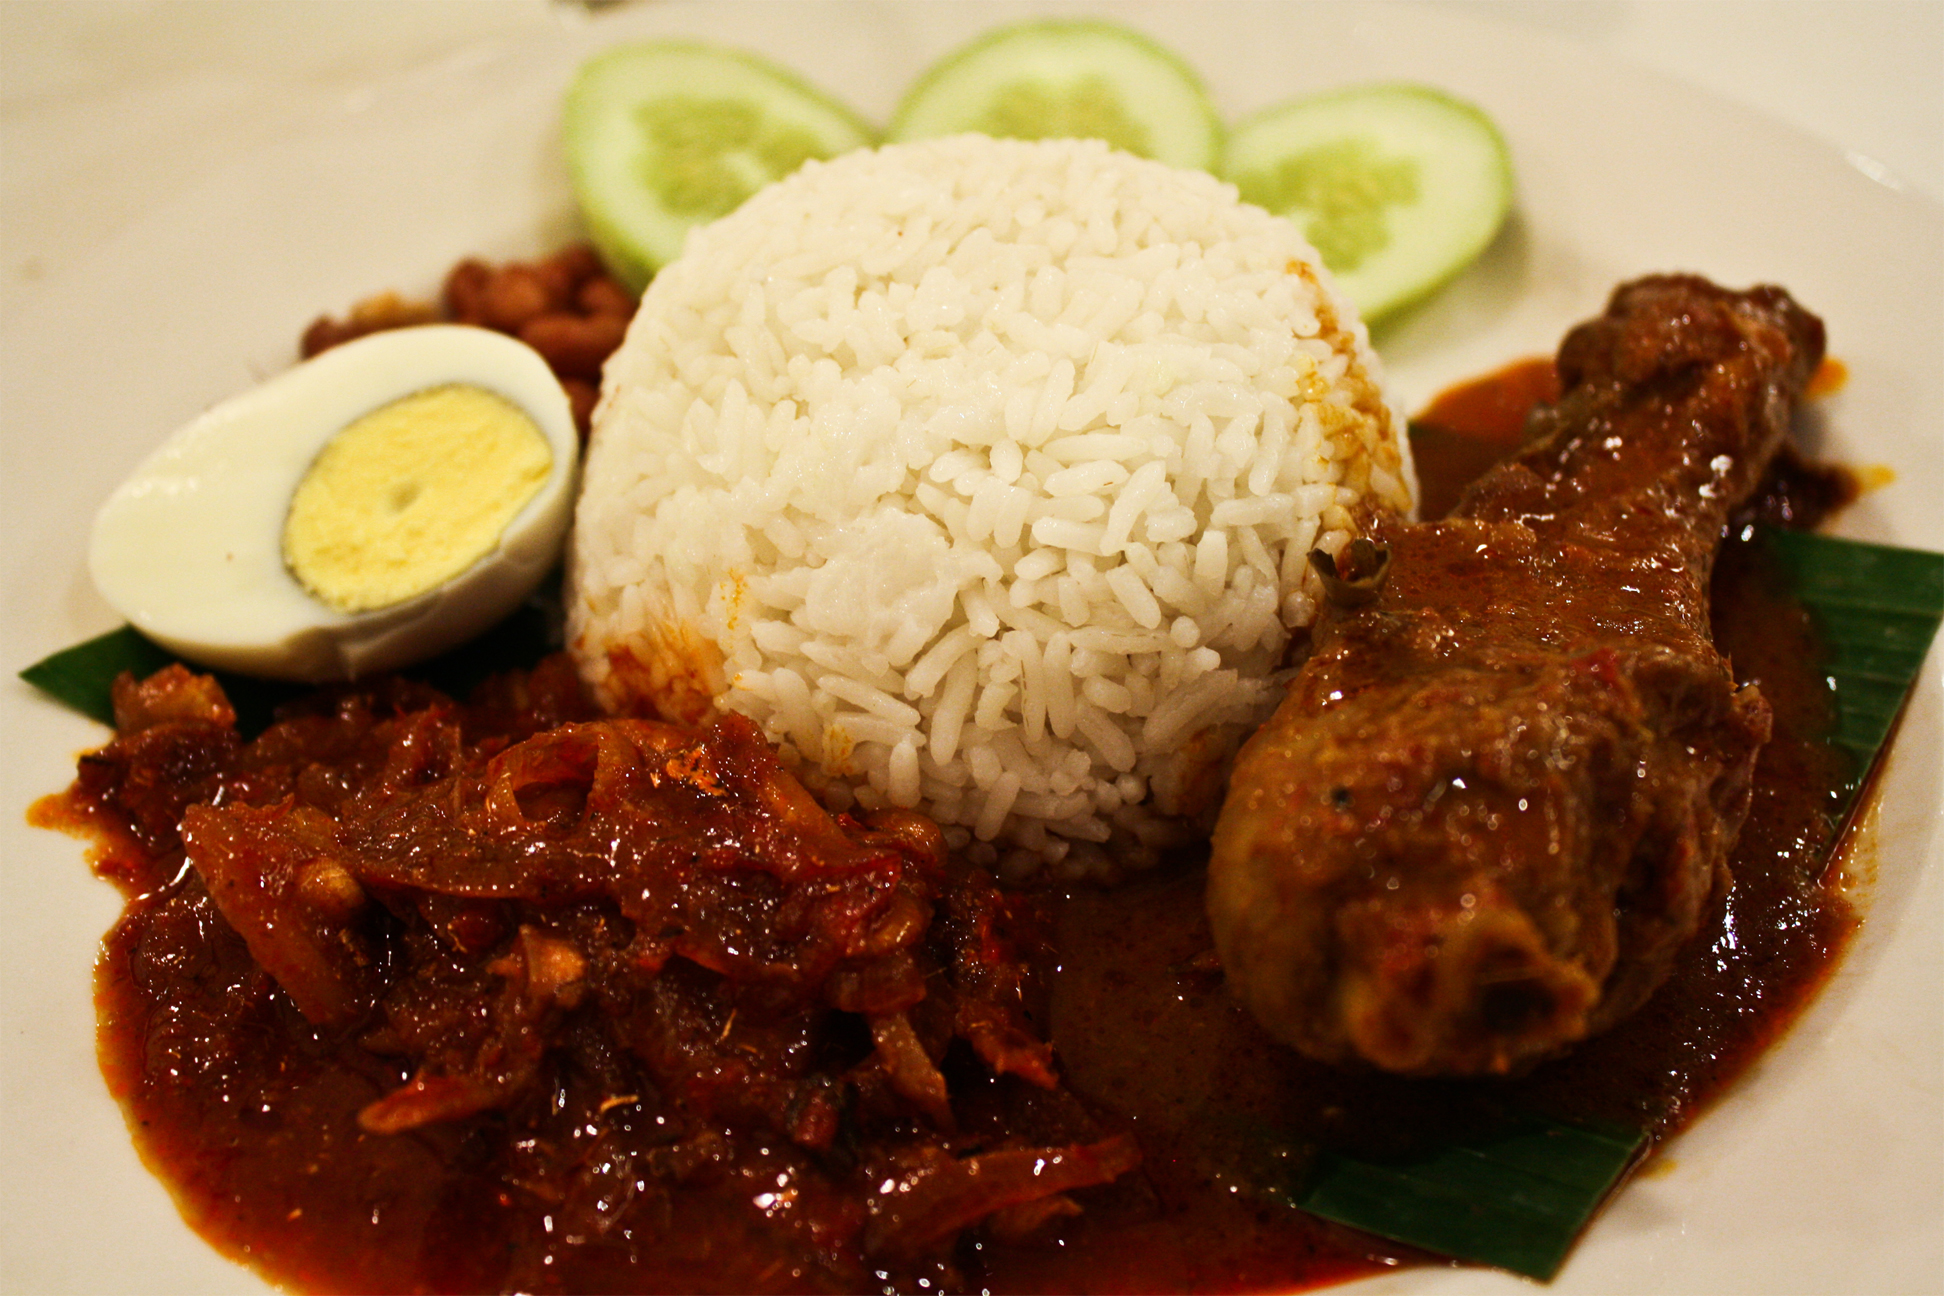 nasi lemak coconut milk sambal chili rich rice fried chicken cucumber singapore malaysia traditional hawker street food